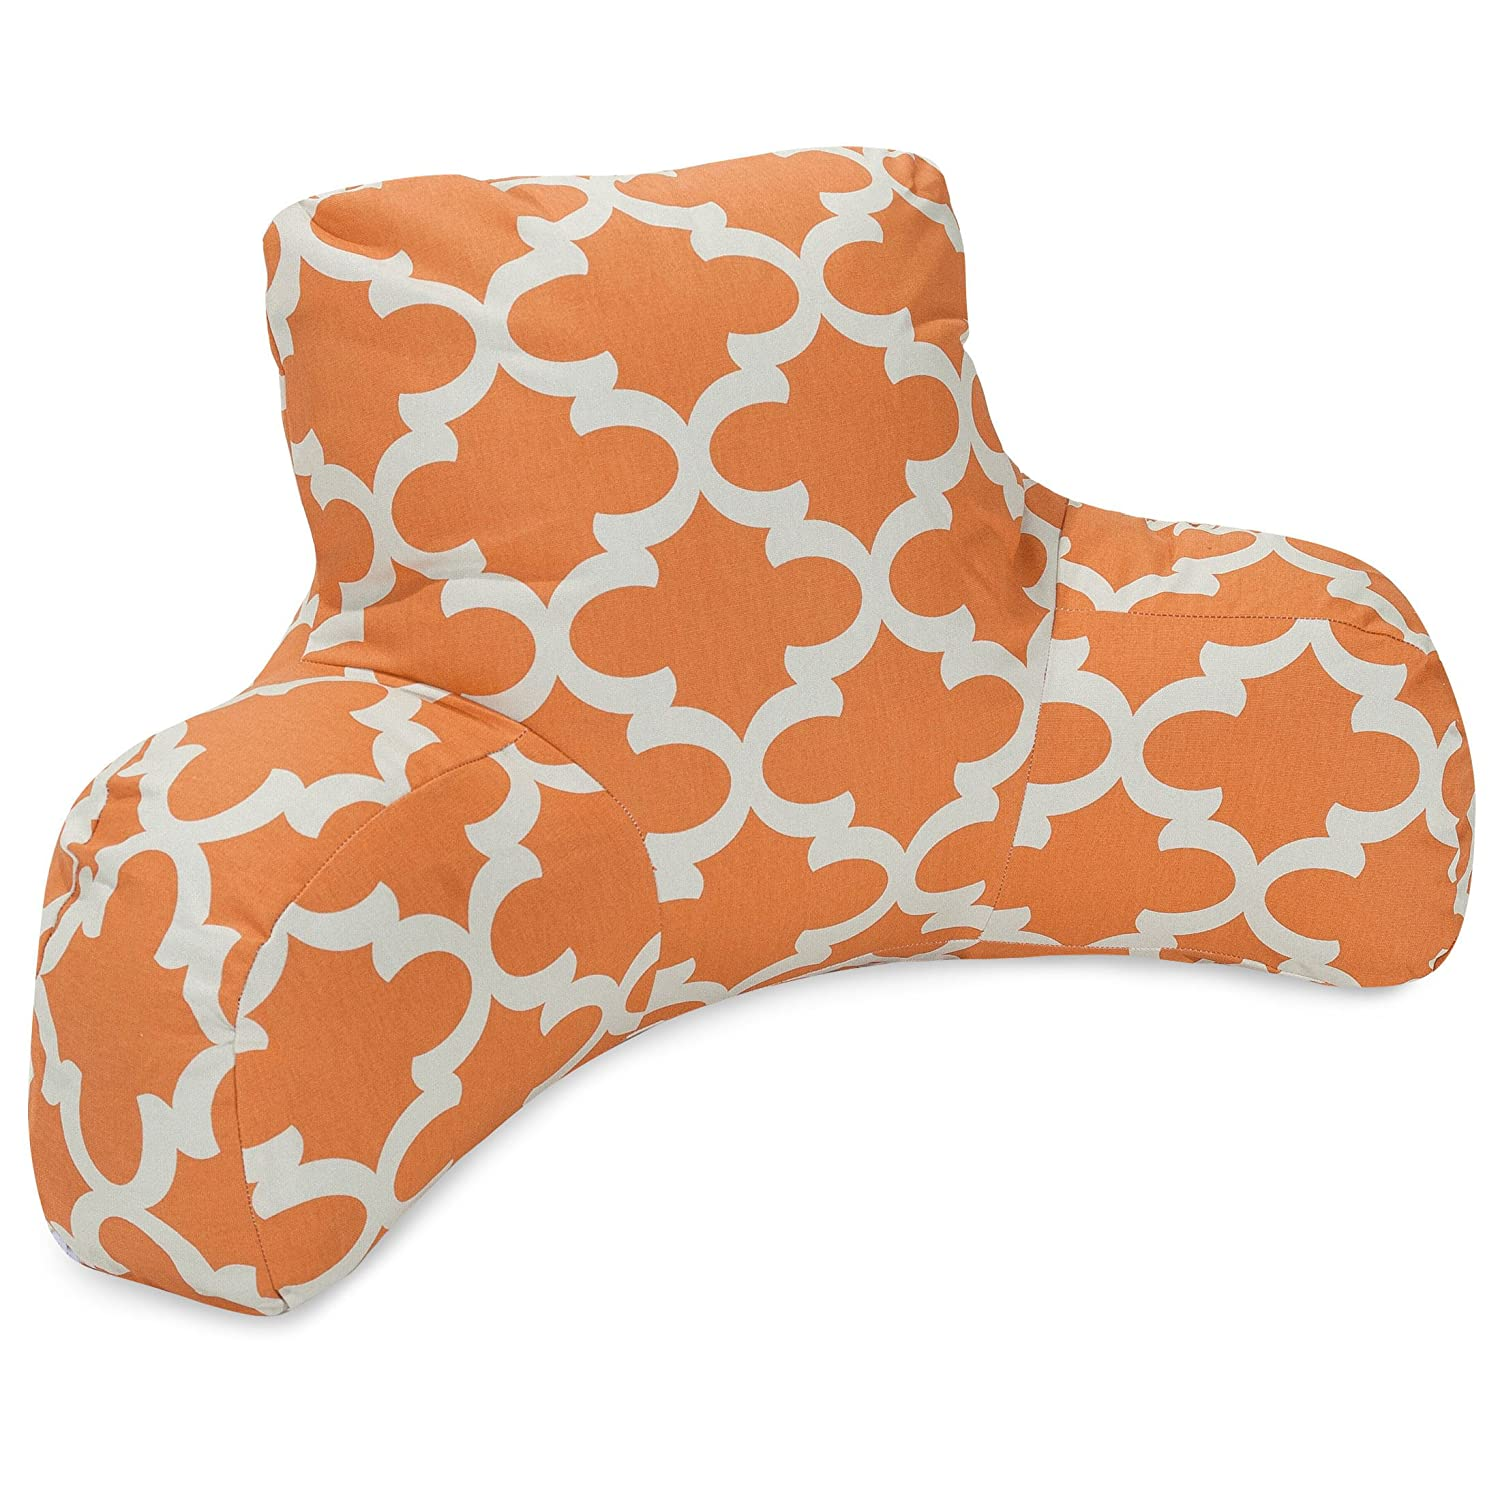 Majestic Home Goods Trellis Reading Pillow, Peach